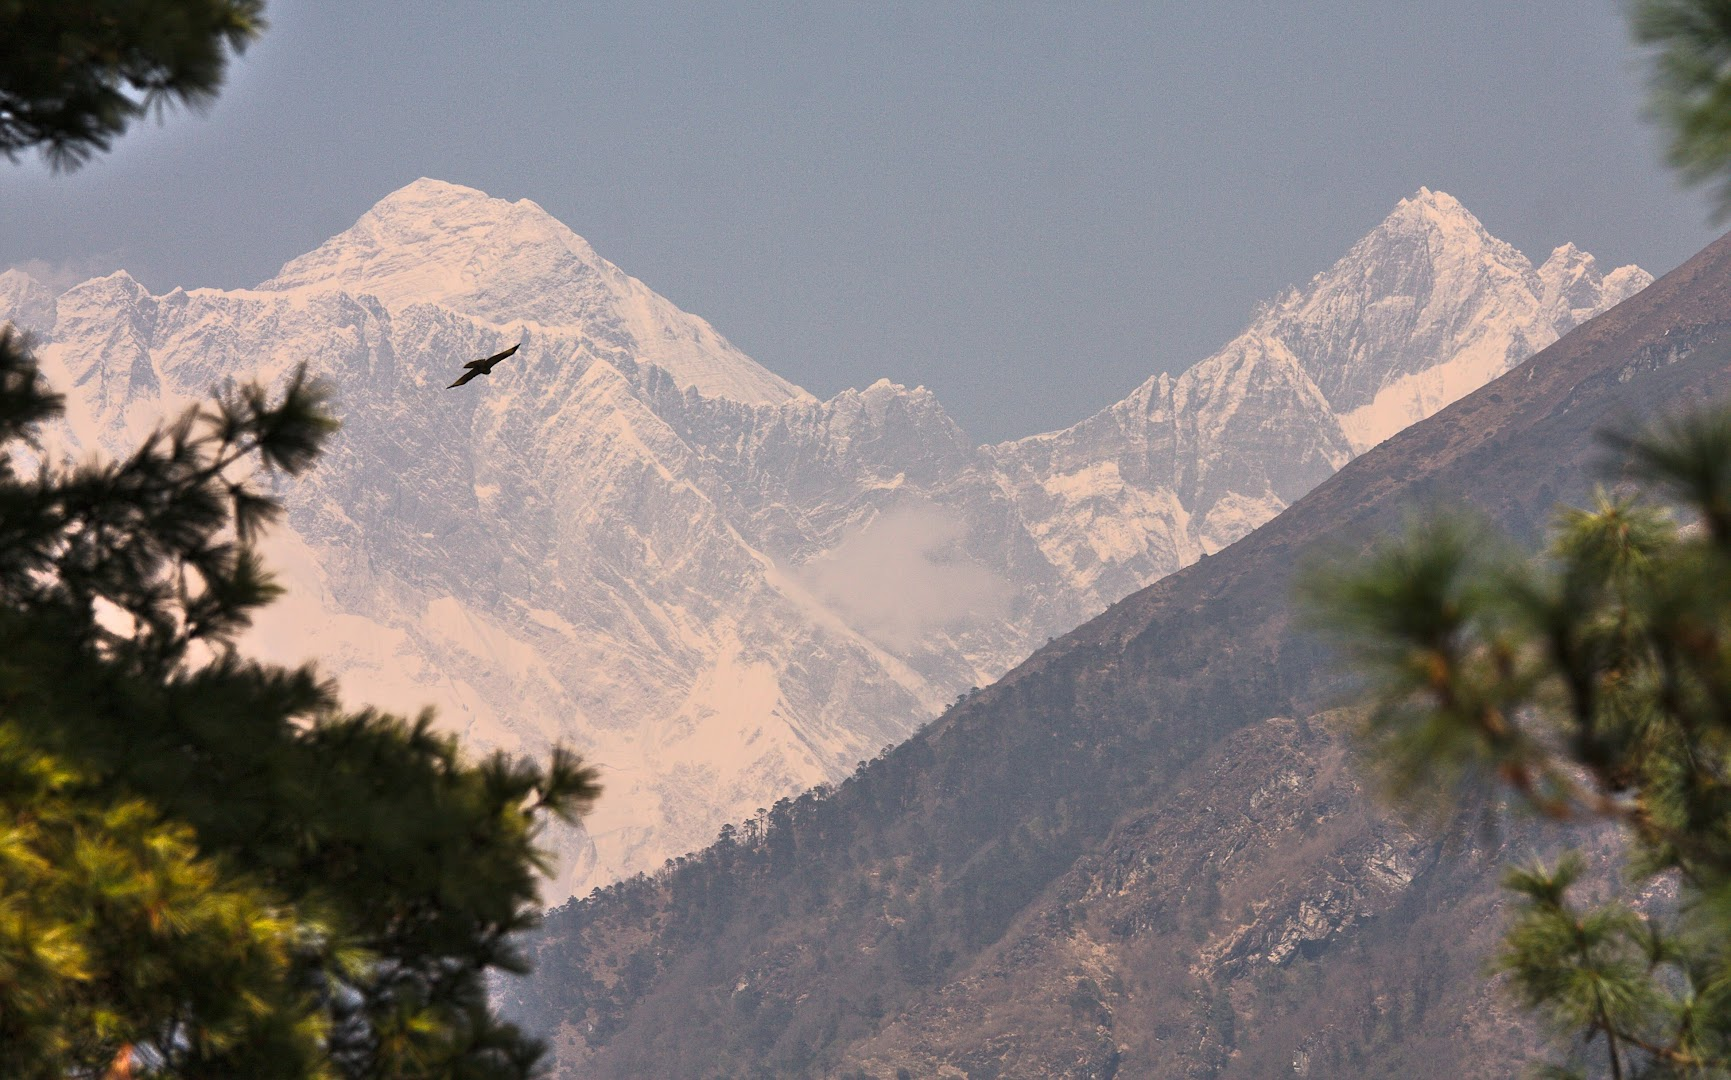 The first glimpse of Everest